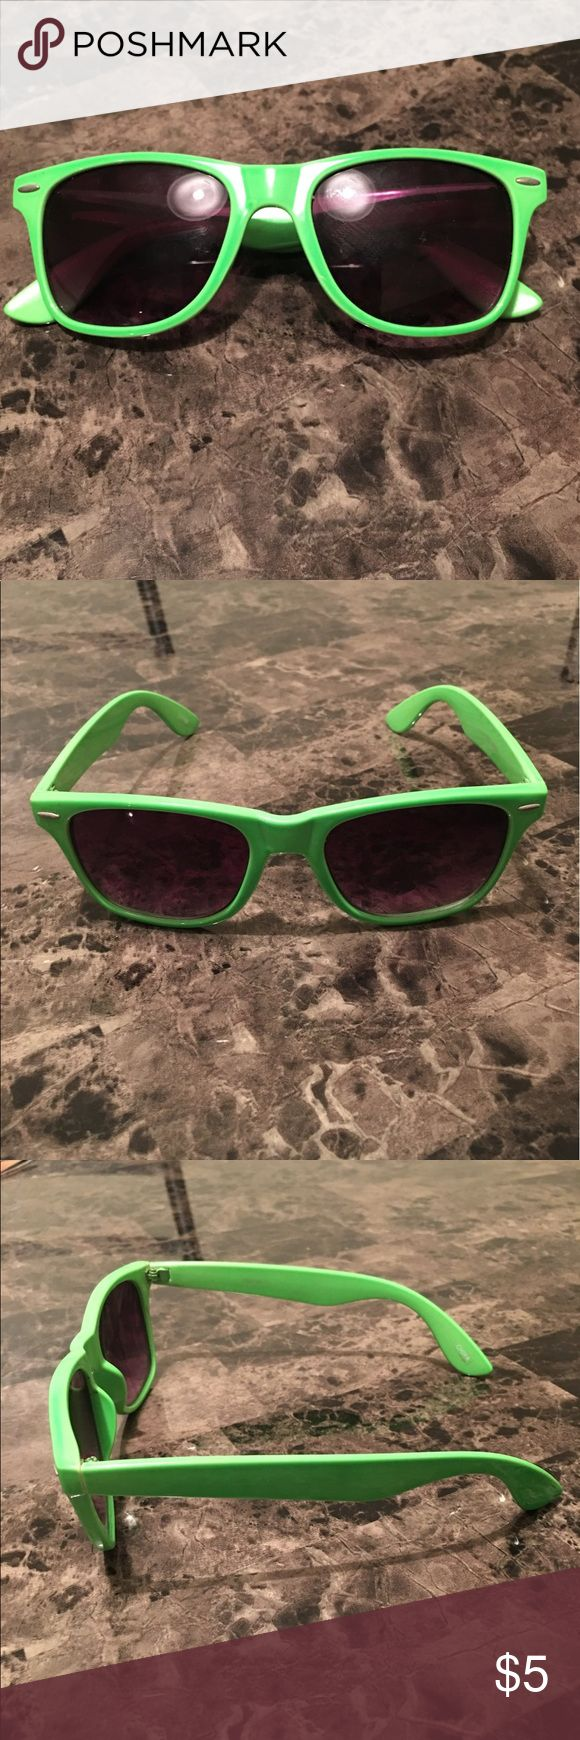 Bright Green Sunglasses 😎 *PRE-LOVED* ❗️BUNDLE ITEM ONLY❗️Neon green plastic frame sunglasses.  The perfect addition to any summer outfit. No flaws! Ask ❓, more 📸 upon request .. ❌trades ❌holds, ✅bundles✌🏾&❤️ Accessories Sunglasses